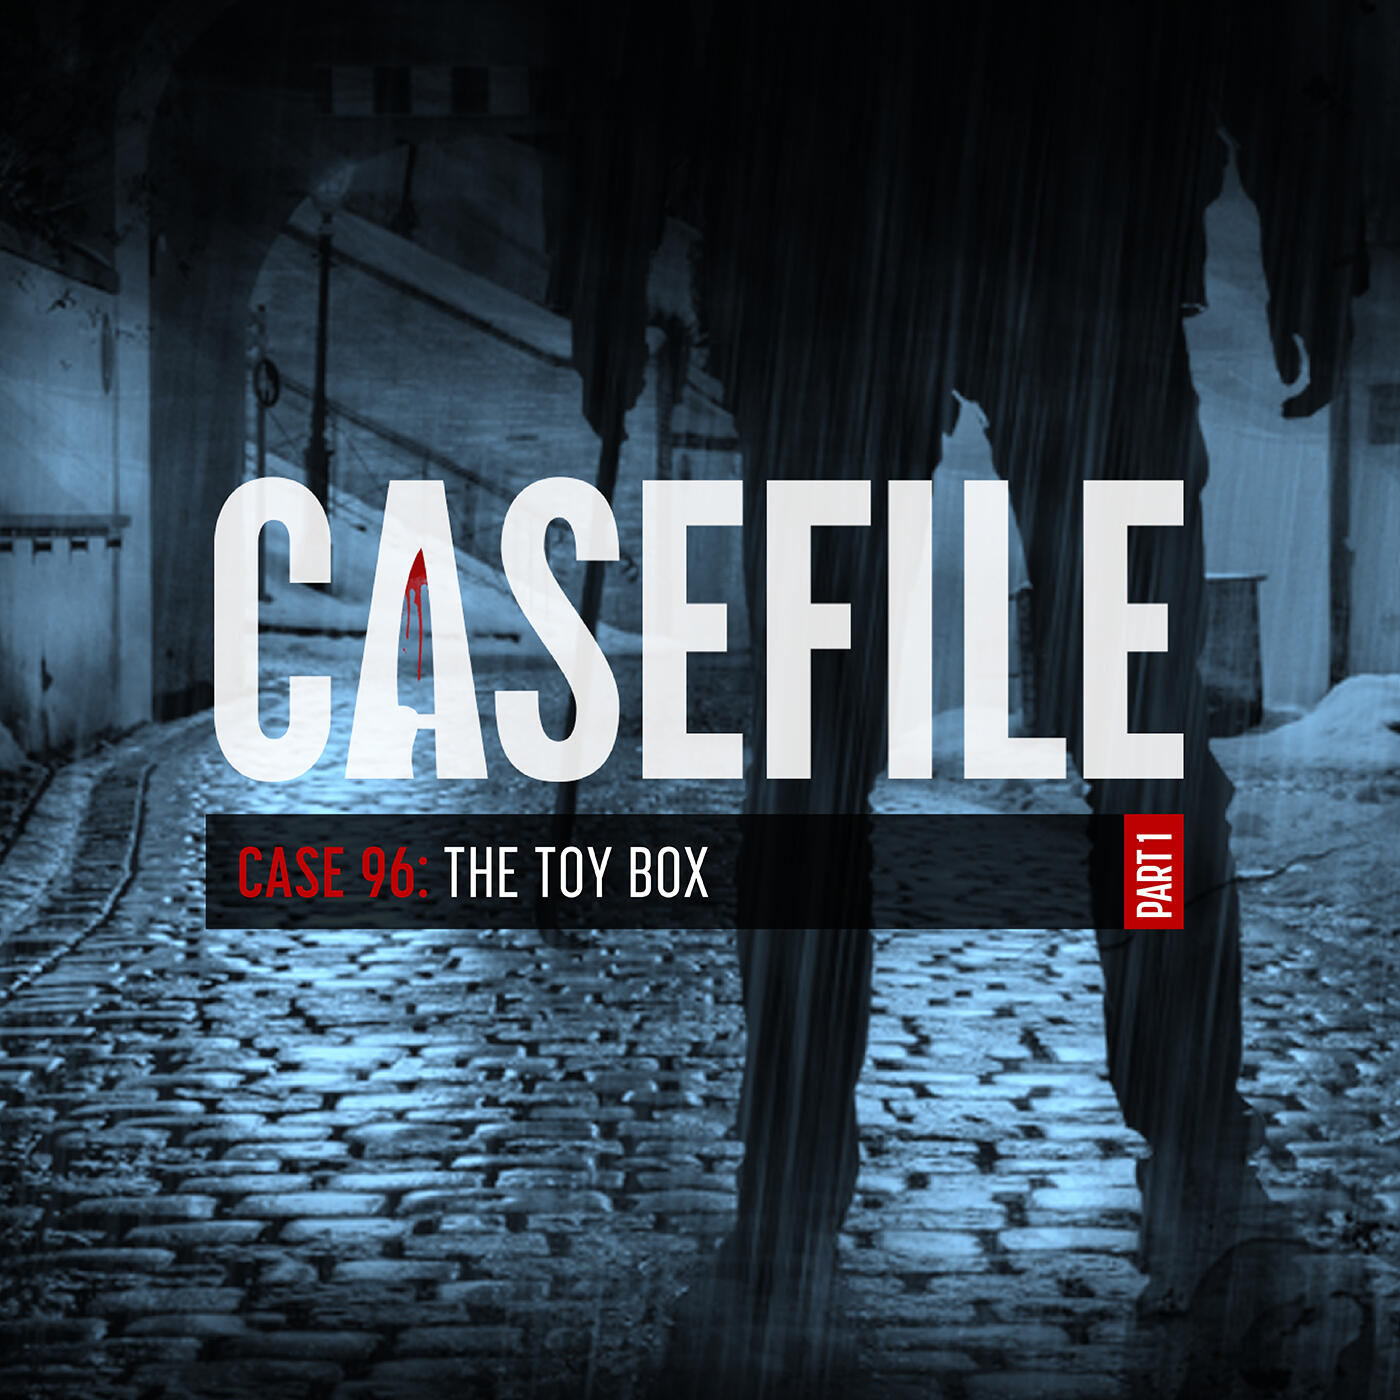 Case 96: The Toy Box (Part 1)